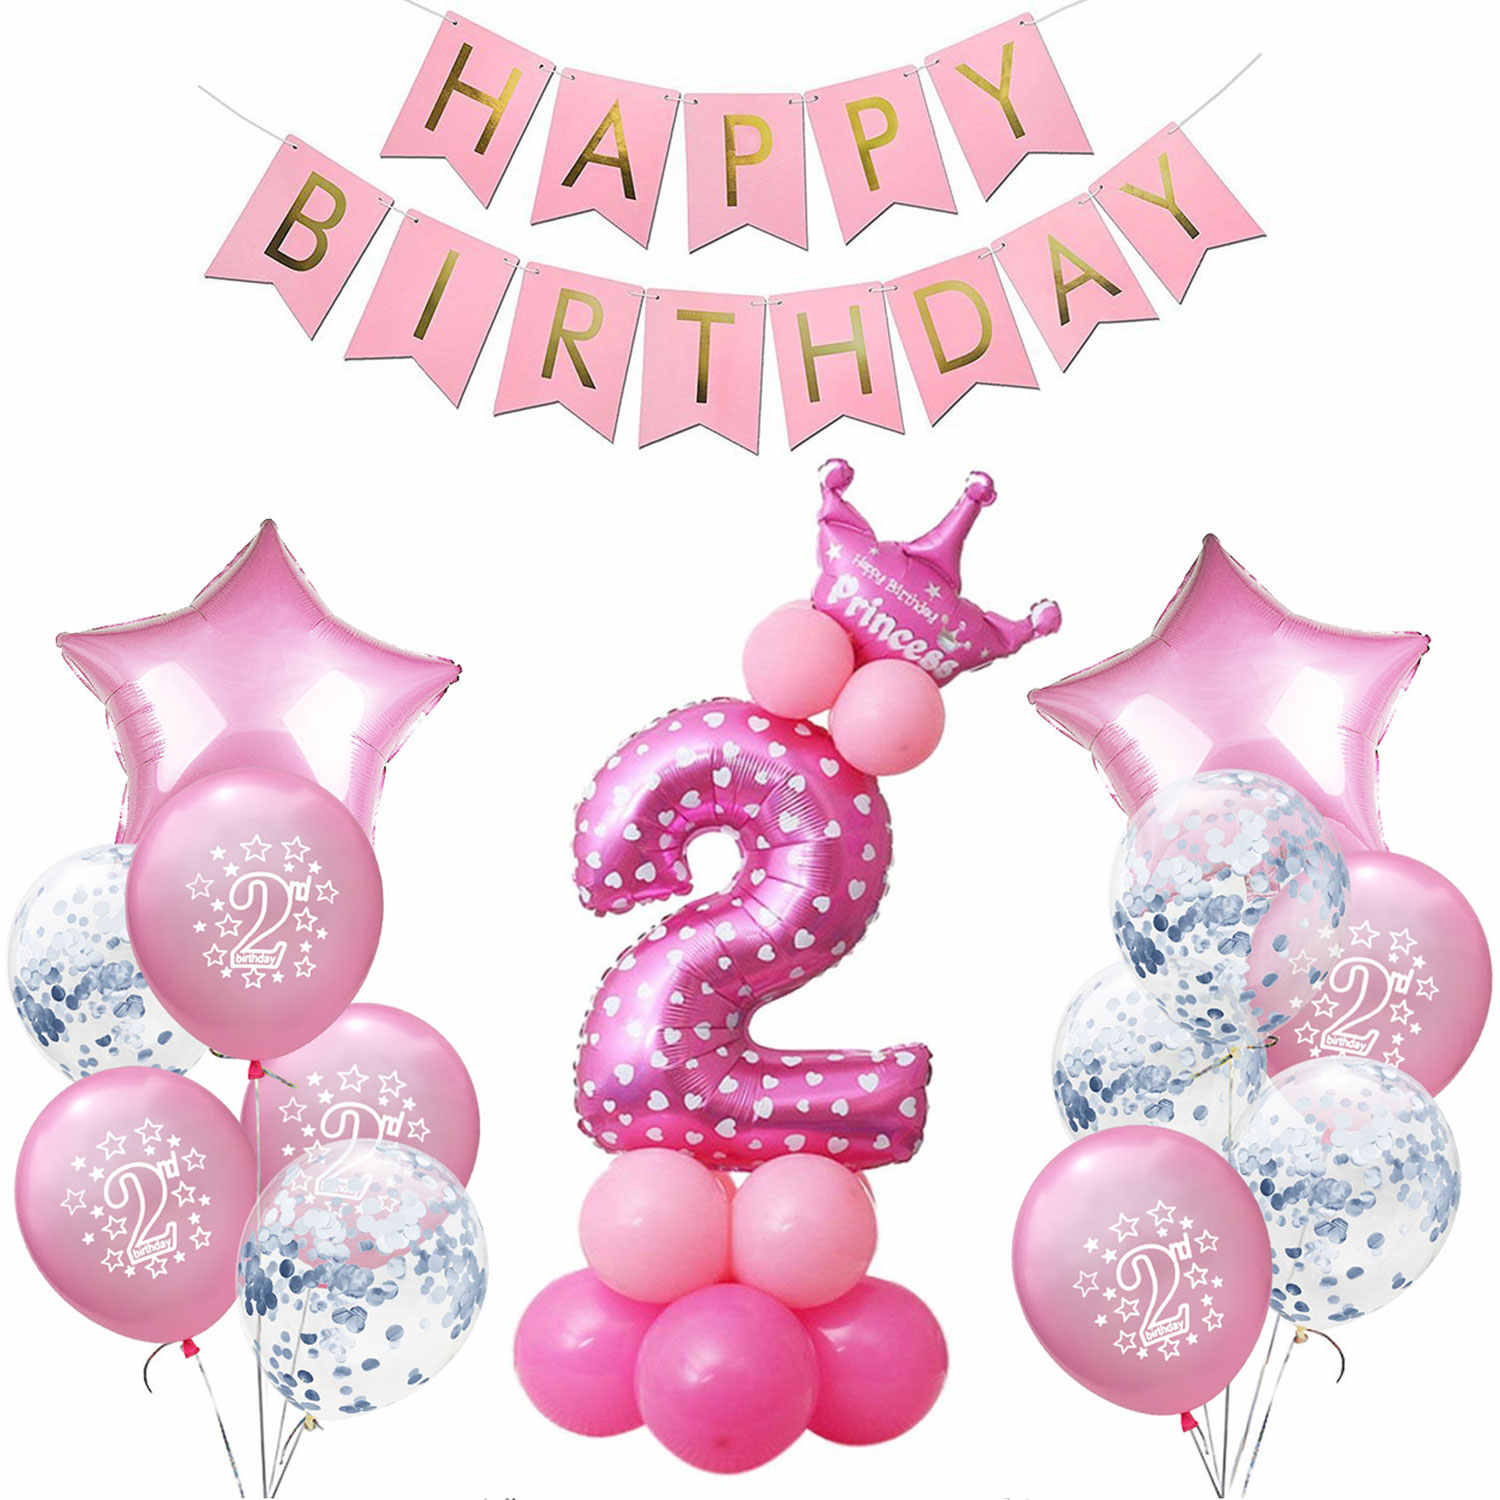 AMAWILL Birthday Decoration Girl Pink Confetti Balloon Baby 2nd Party Decor Hot Pompoms For